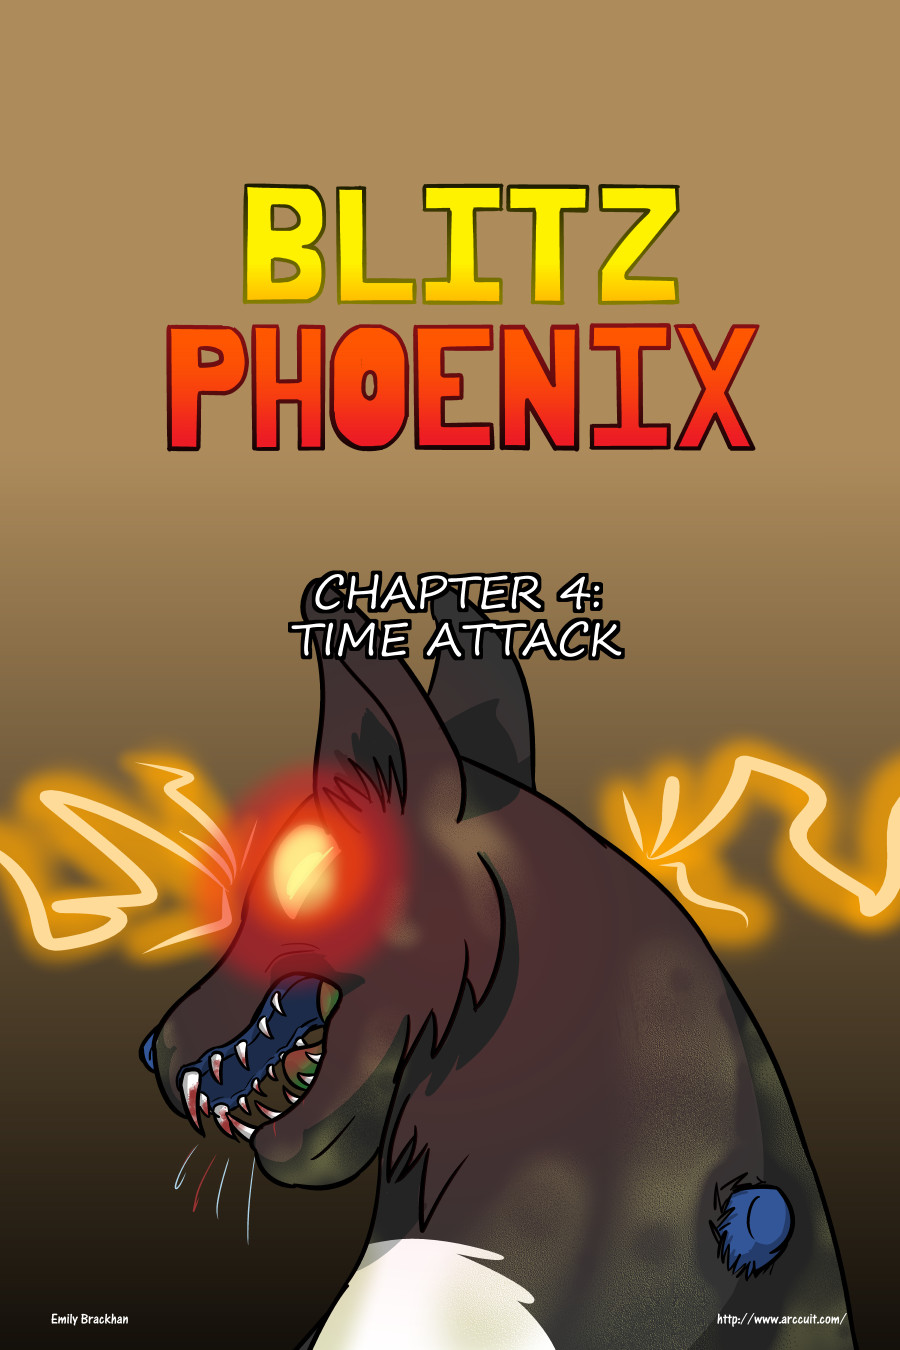 Blitz Phoenix: Chapter 4 - Time Attack